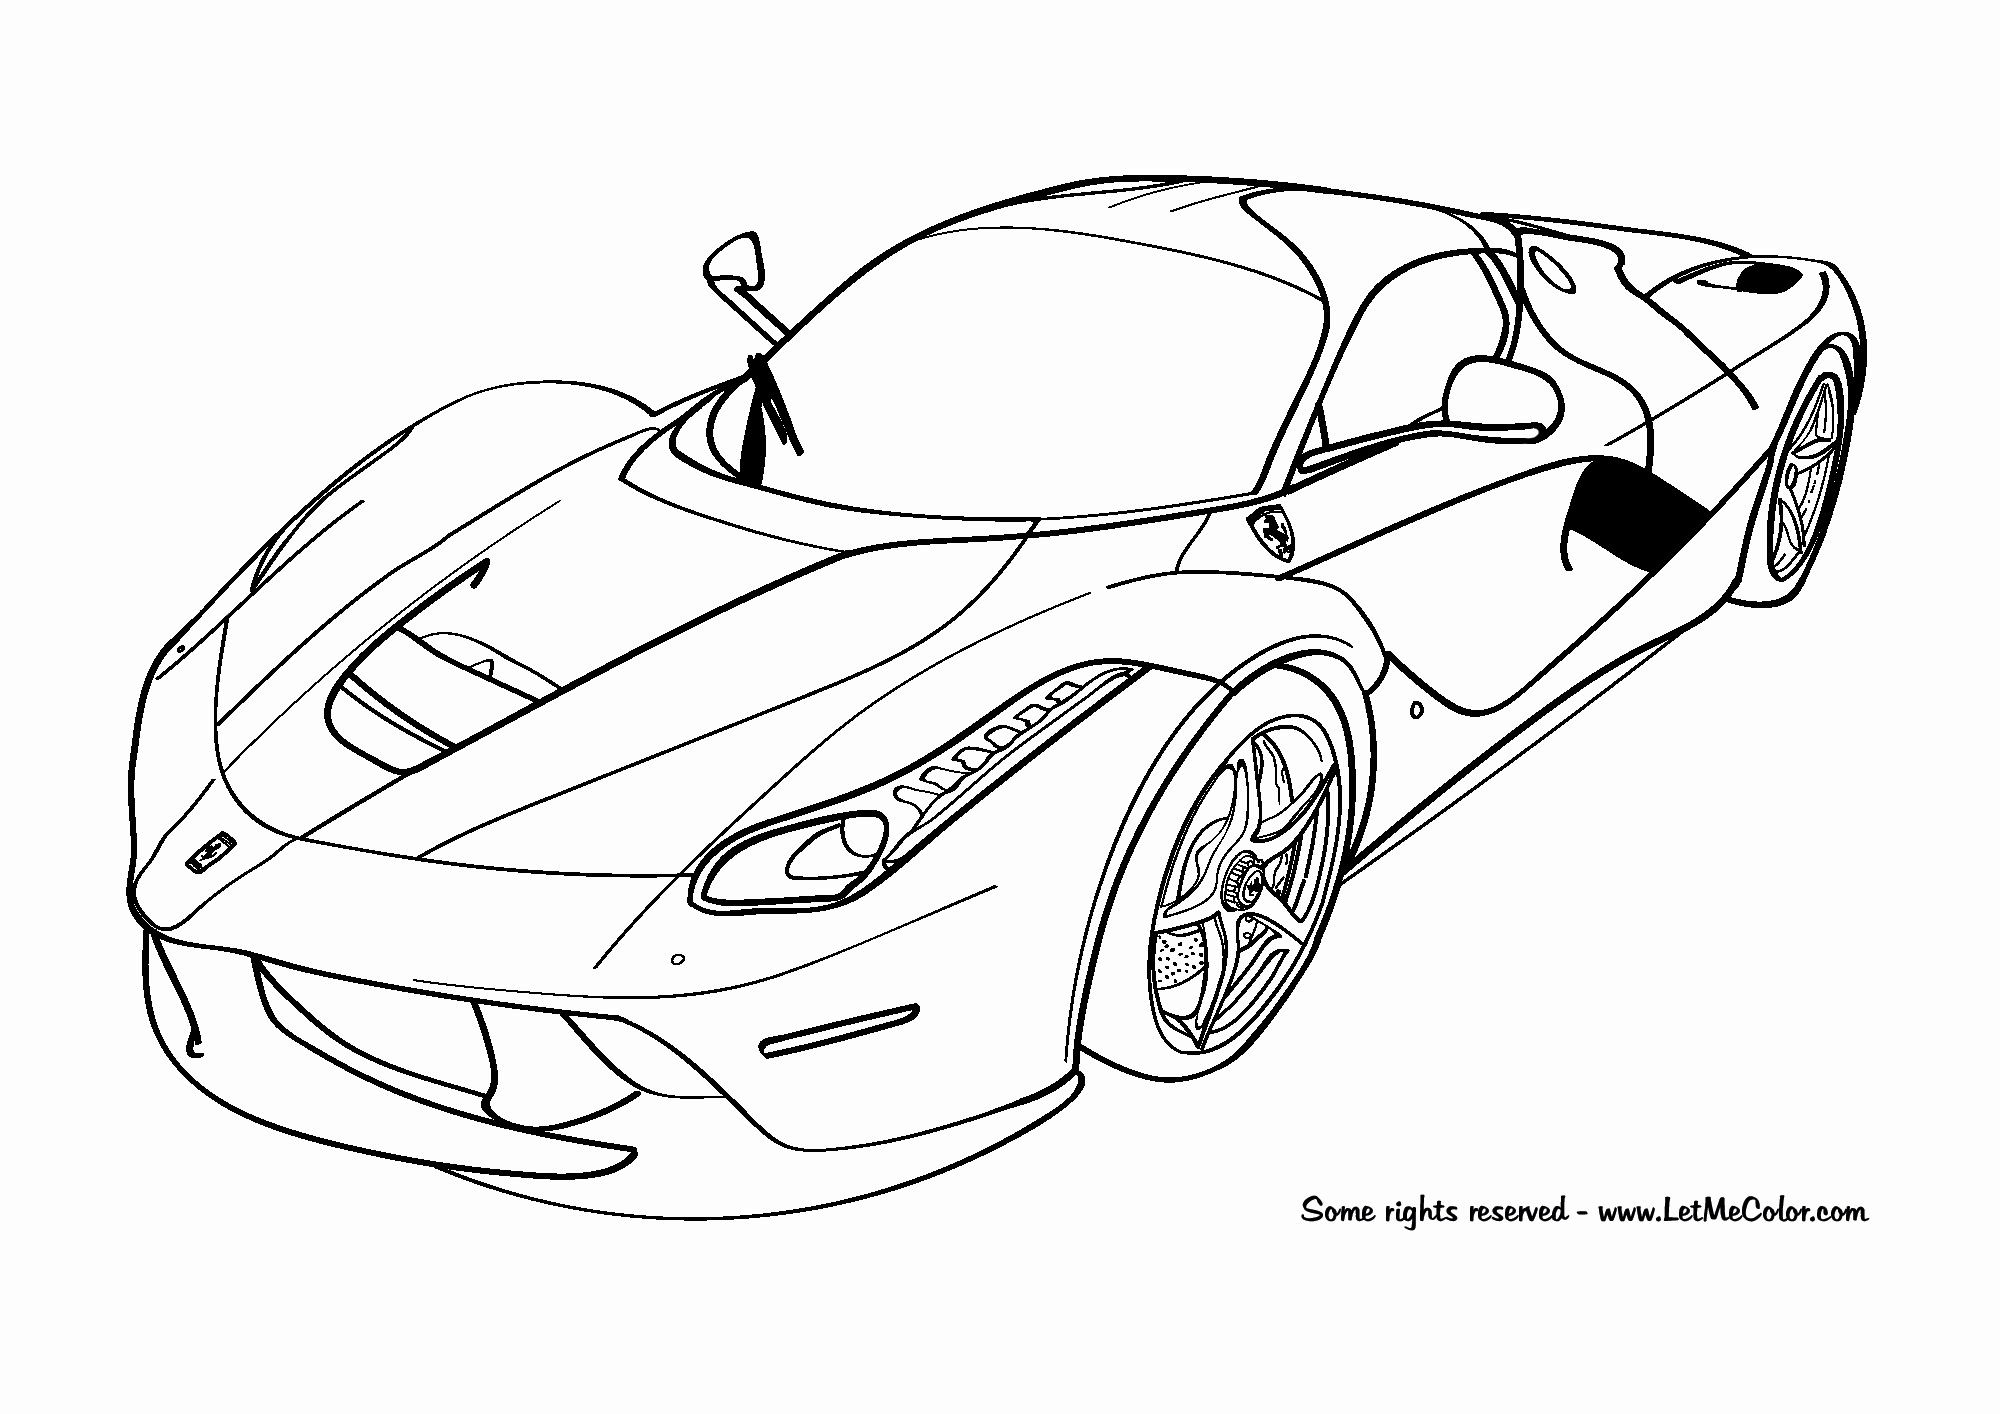 2000x1414 Nascar Coloring Pages Awesome Cars Coloring Page Ferrari Laferrari